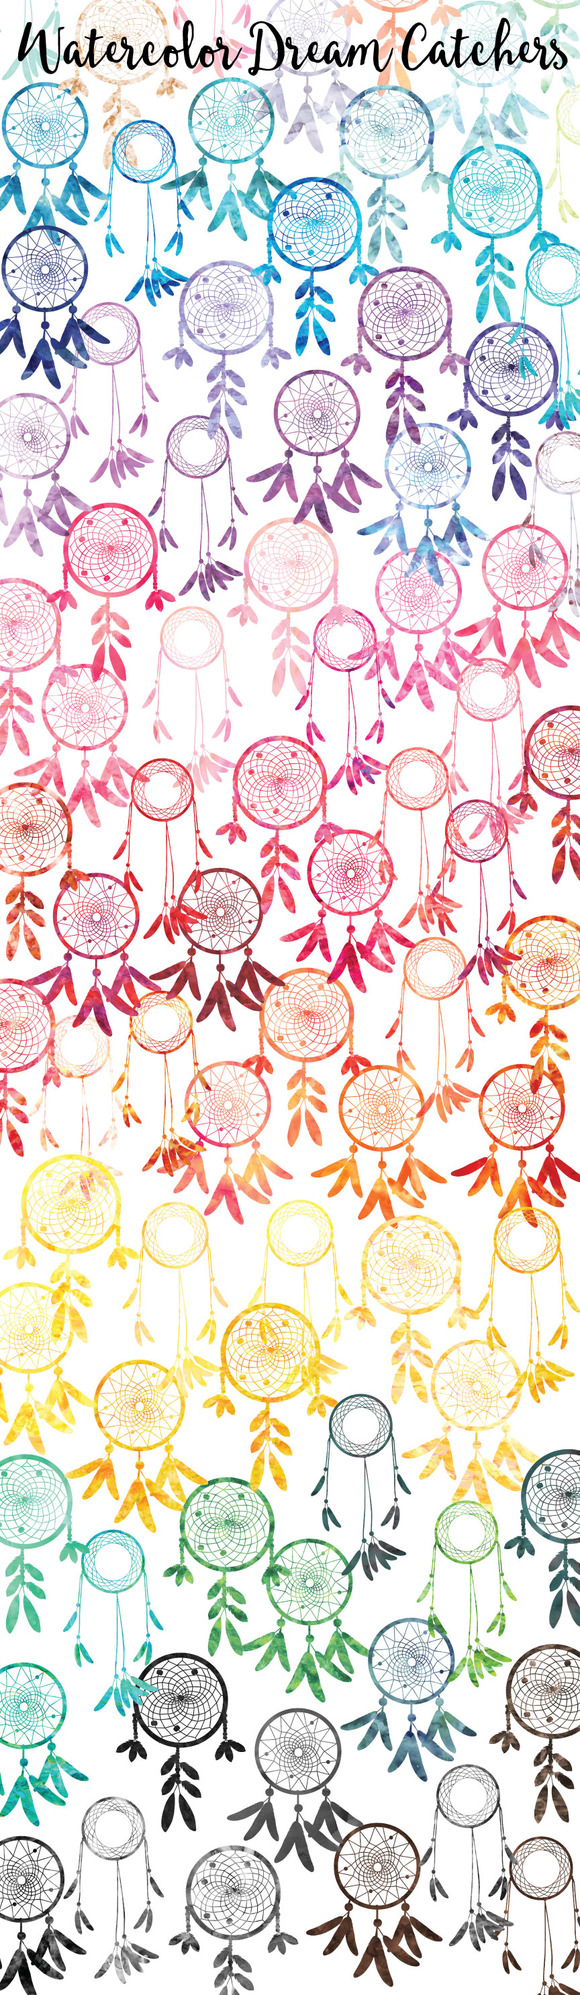 Watercolor Dream Catcher Silhouettes